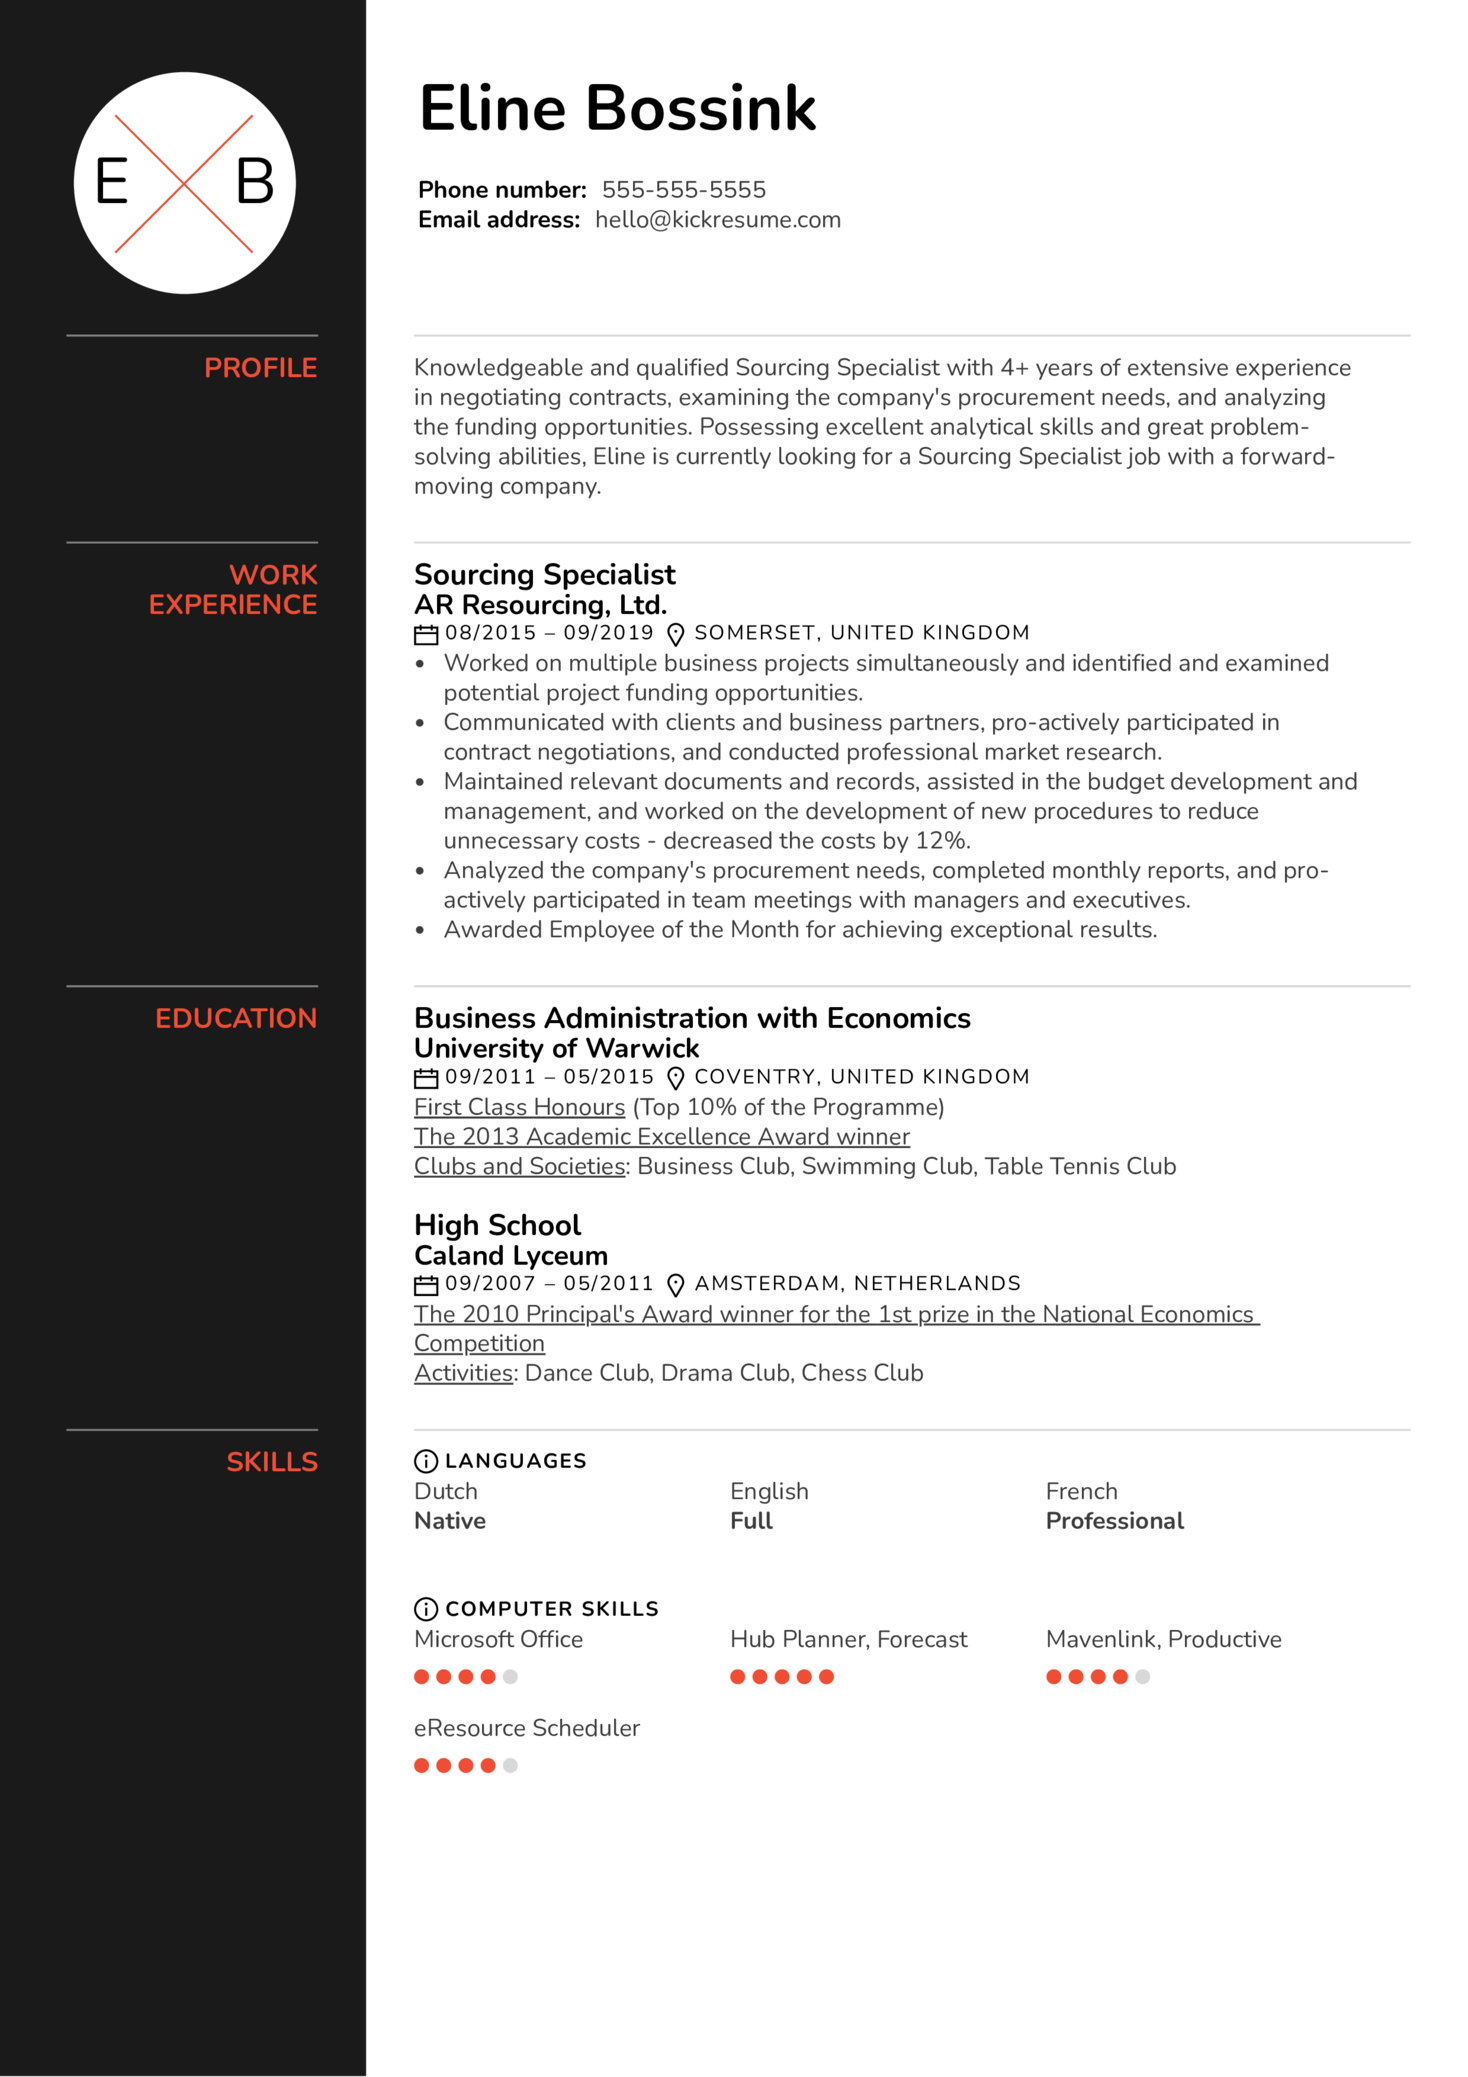 Sourcing Specialist Resume Example (Part 1)